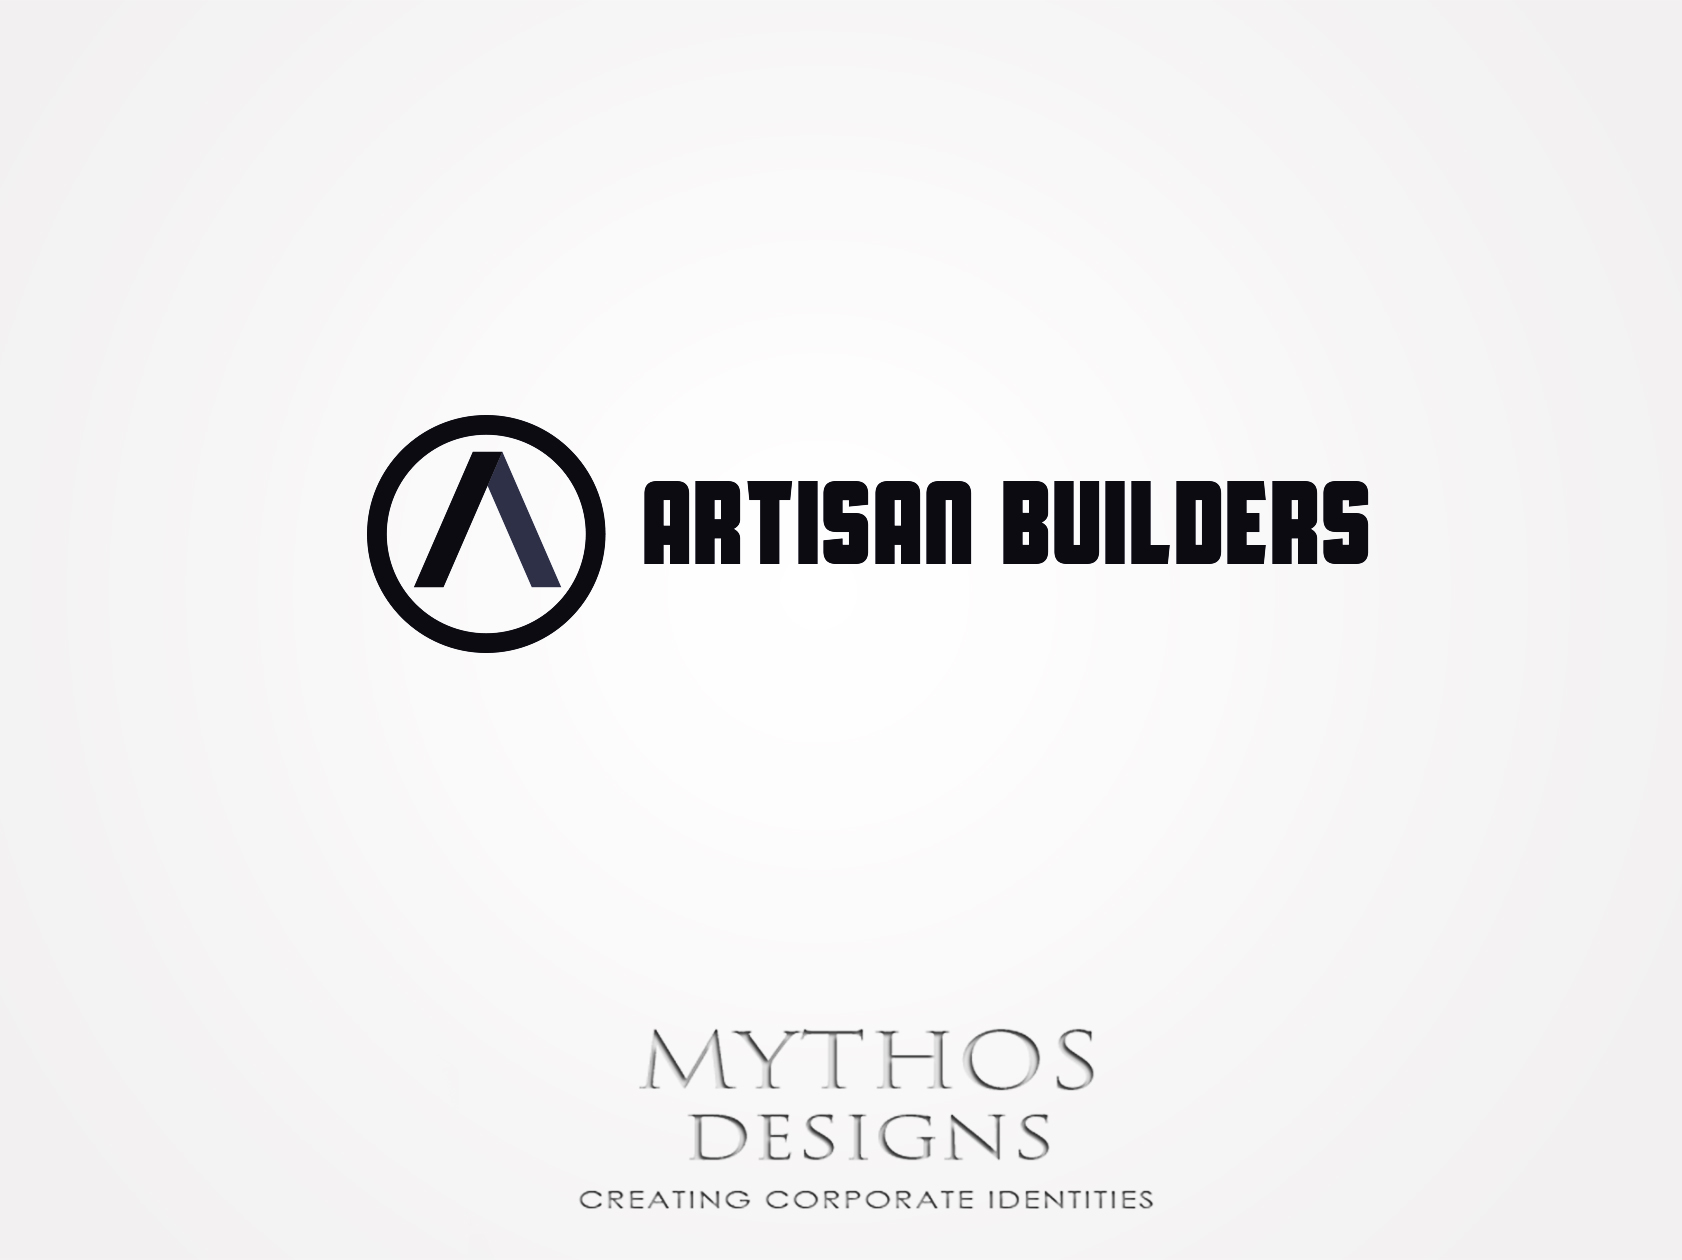 Logo Design by Mythos Designs - Entry No. 47 in the Logo Design Contest Captivating Logo Design for Artisan Builders.